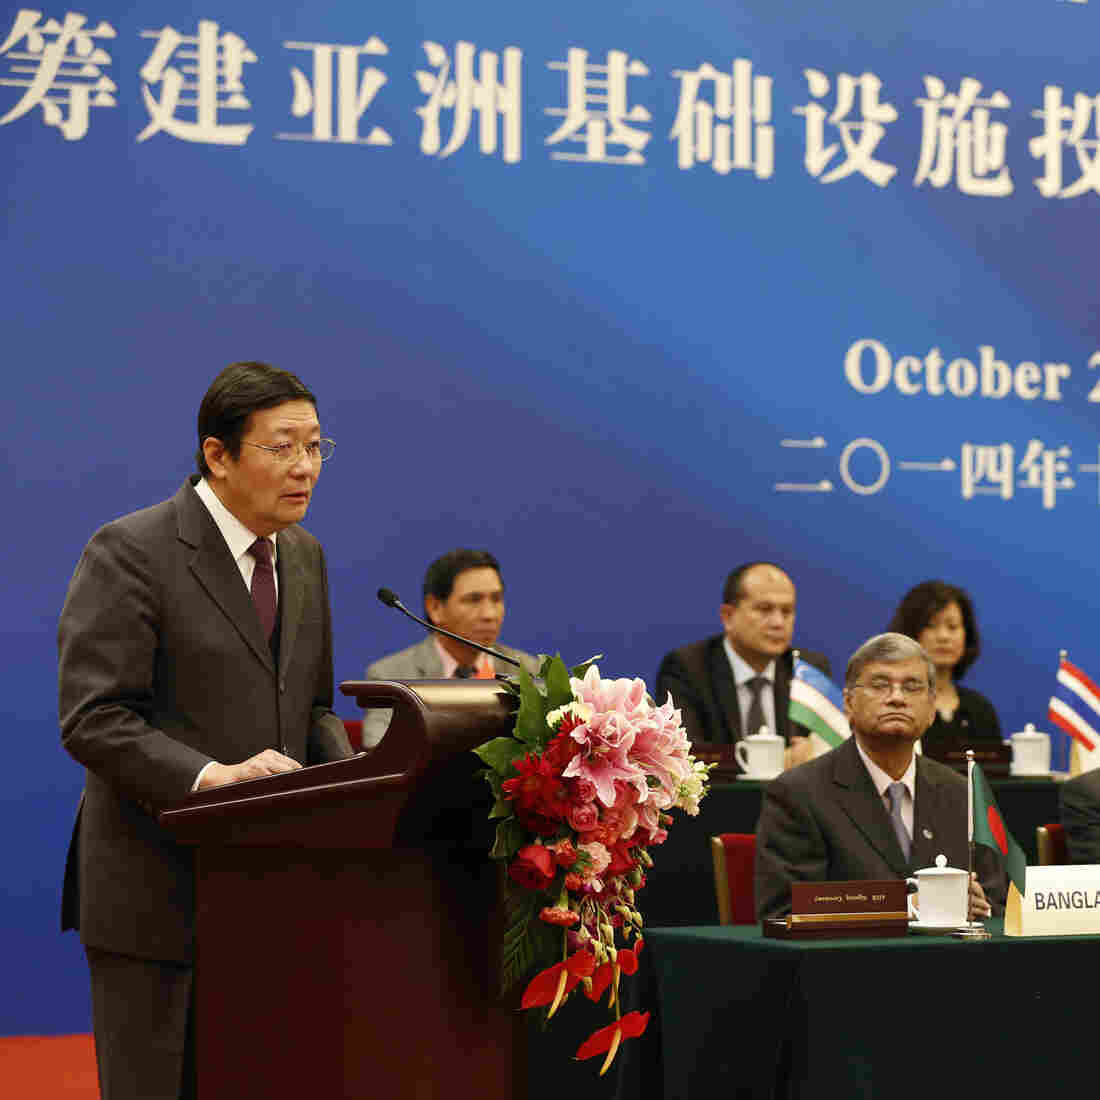 New Asian Development Bank Seen As Sign Of China's Growing Influence